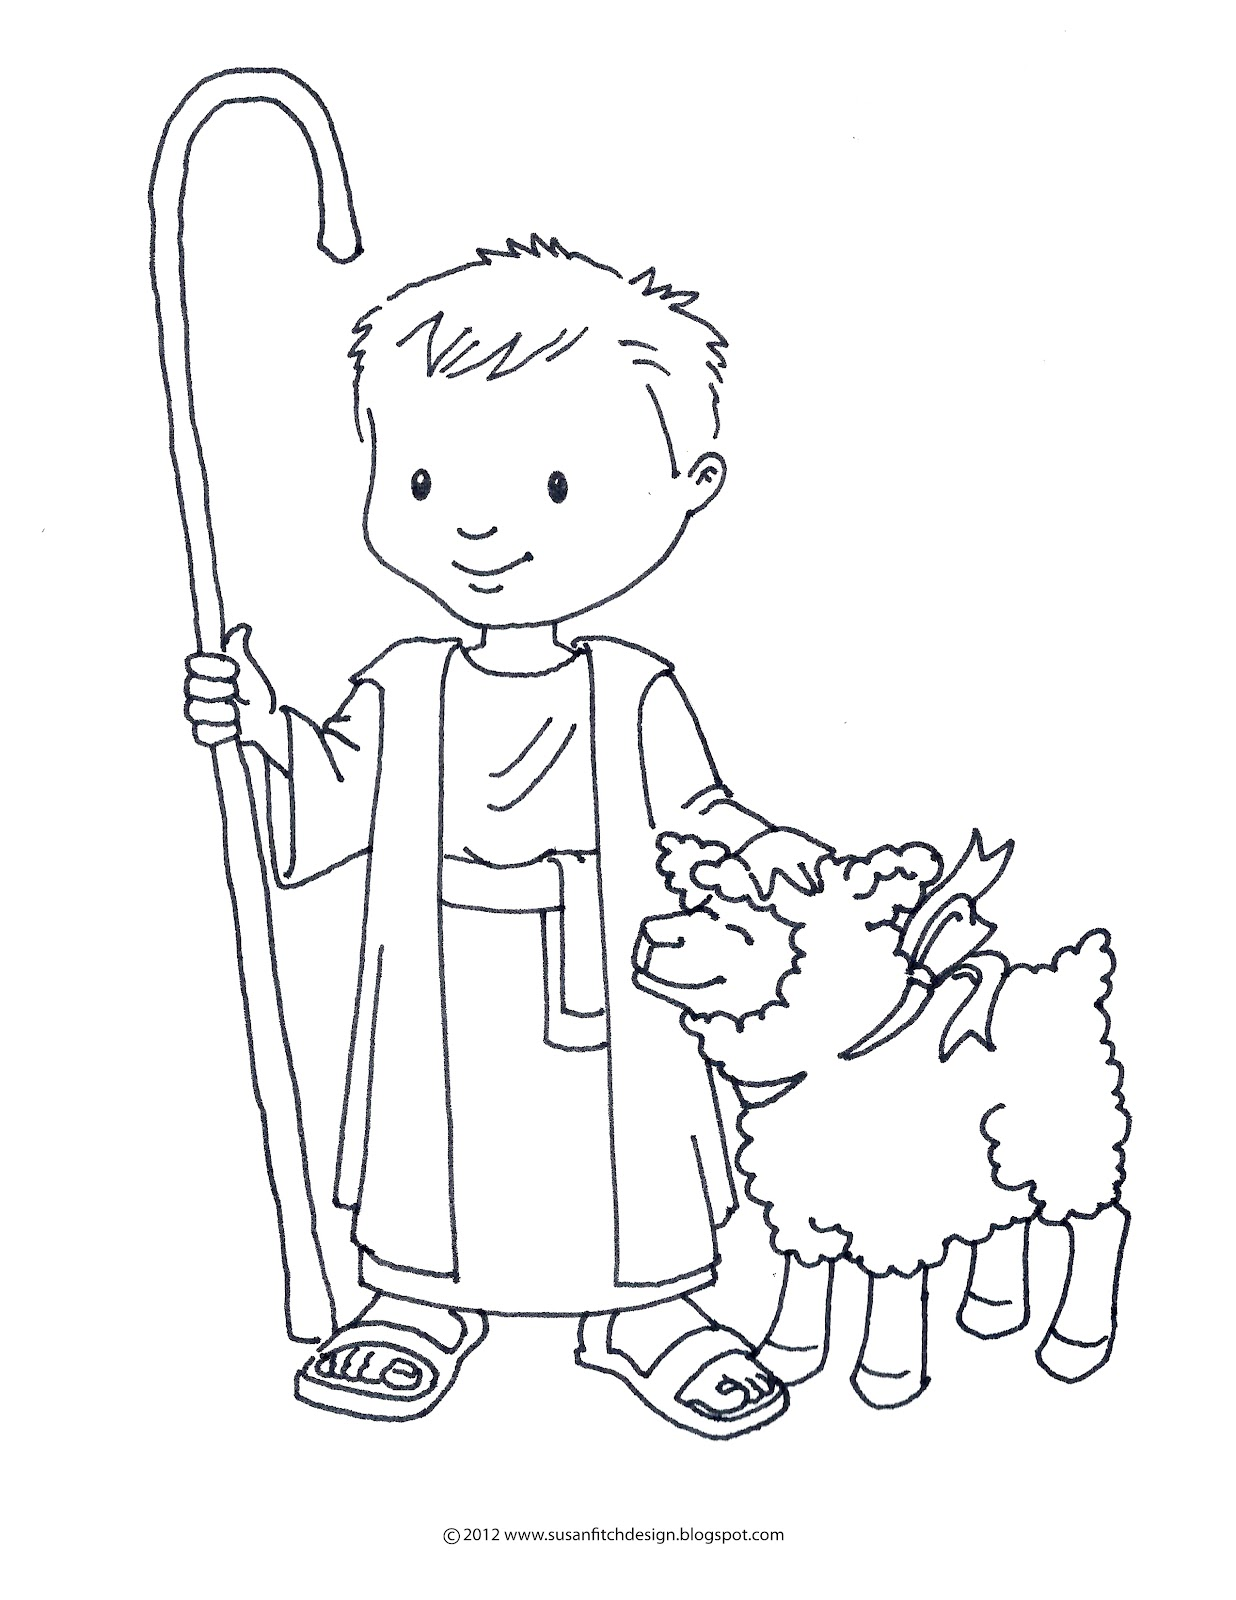 Susan fitch design for Coloring pages sheep and the shepherd